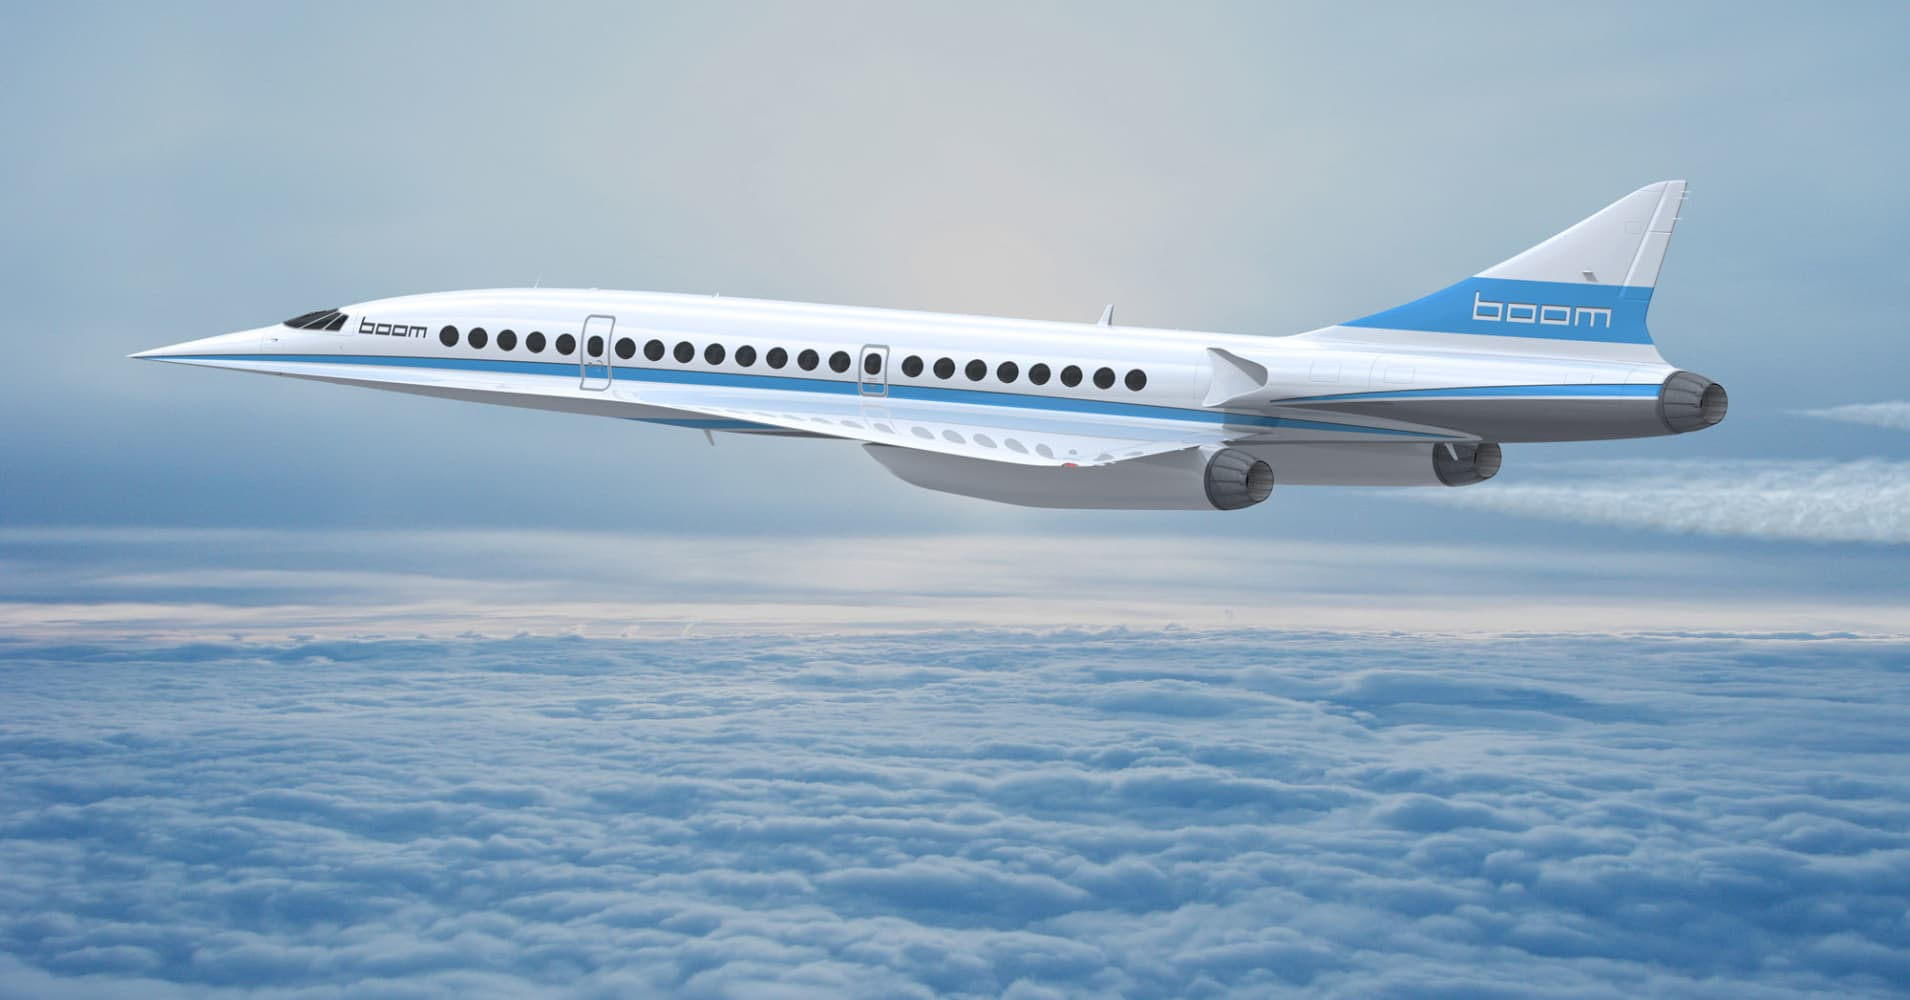 This founder dreams of flying New York to London in 3 hours on a plane with huge windows